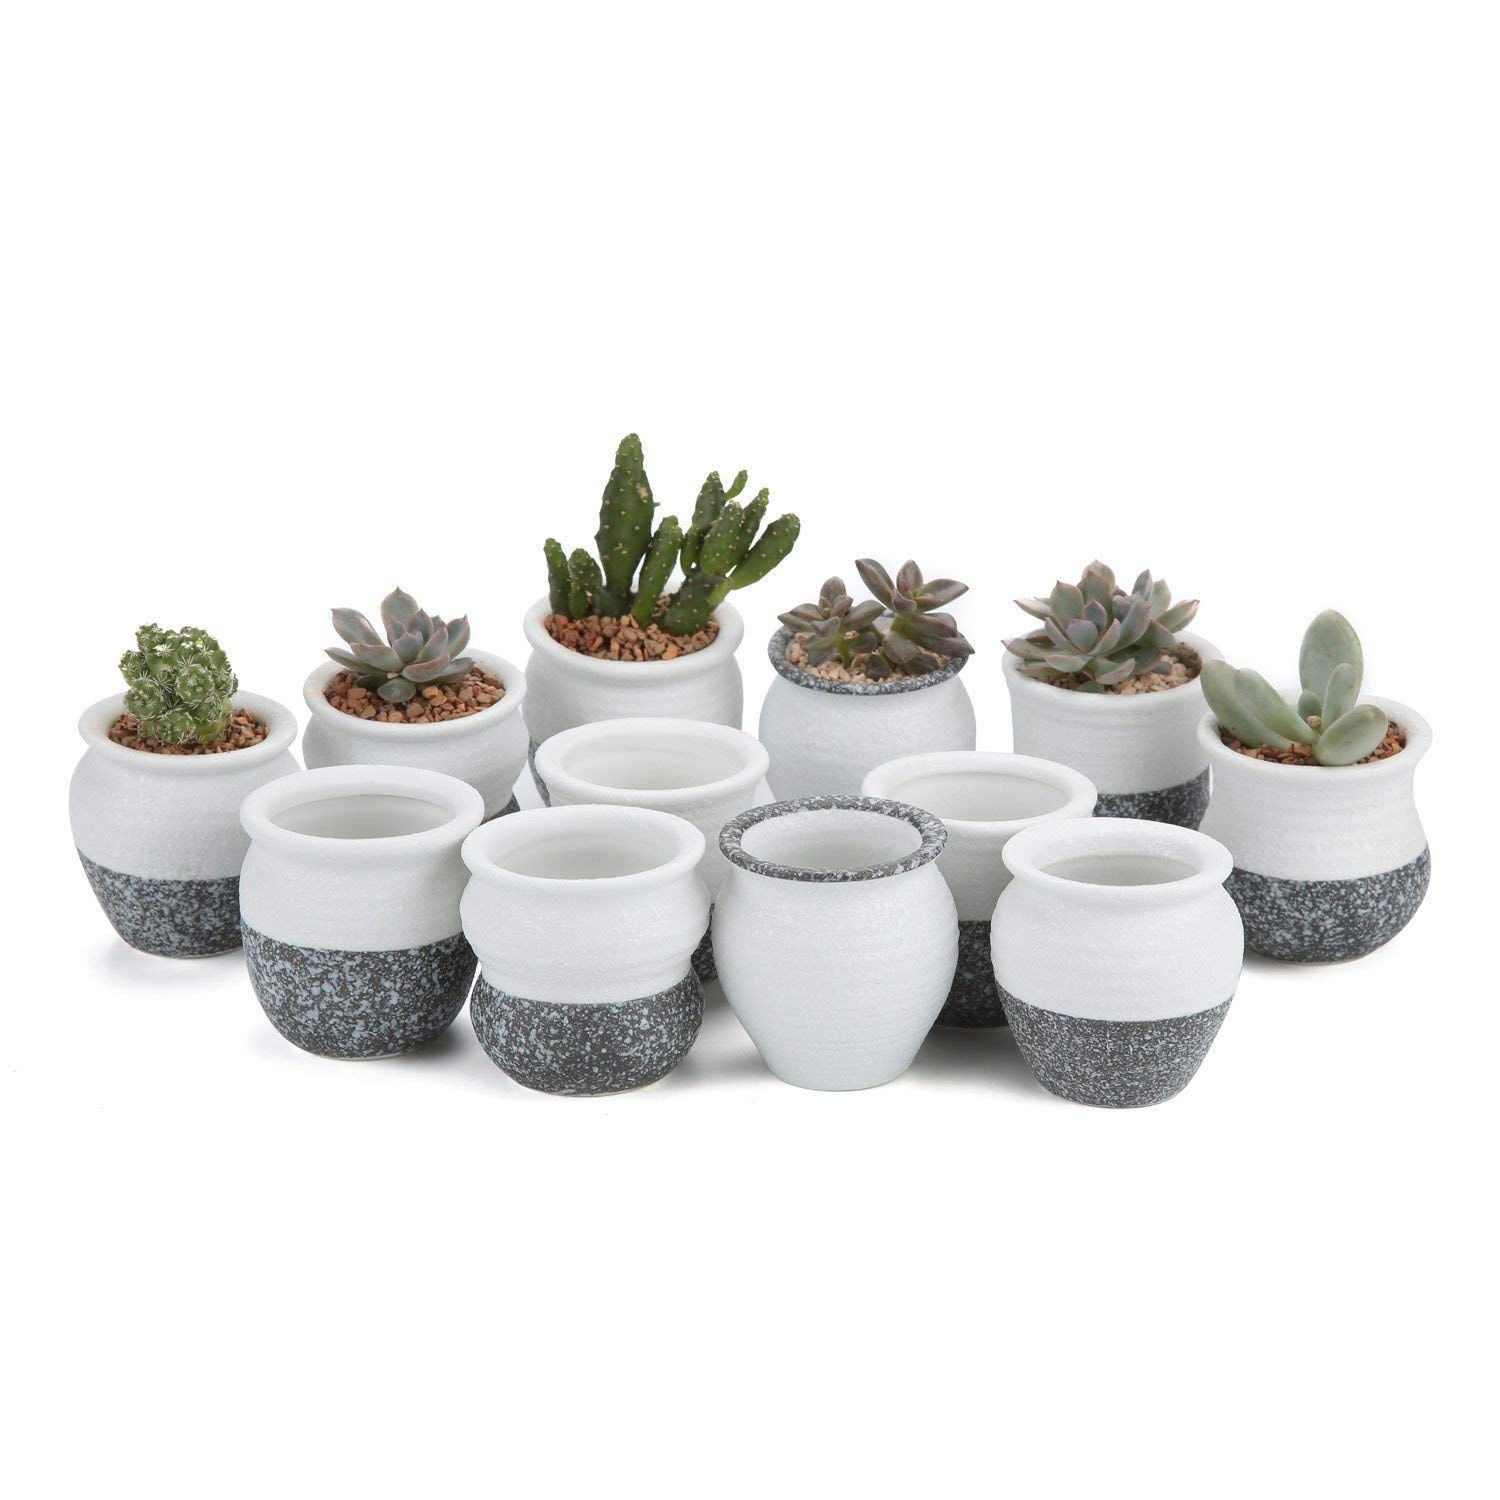 Mini Ceramic Plant Pots Perfect For Holding Succulent Herbs And Catus Plants Set Of 12 Pots Ceramic Succulent Planter Ceramic Succulent Cactus Plant Pots